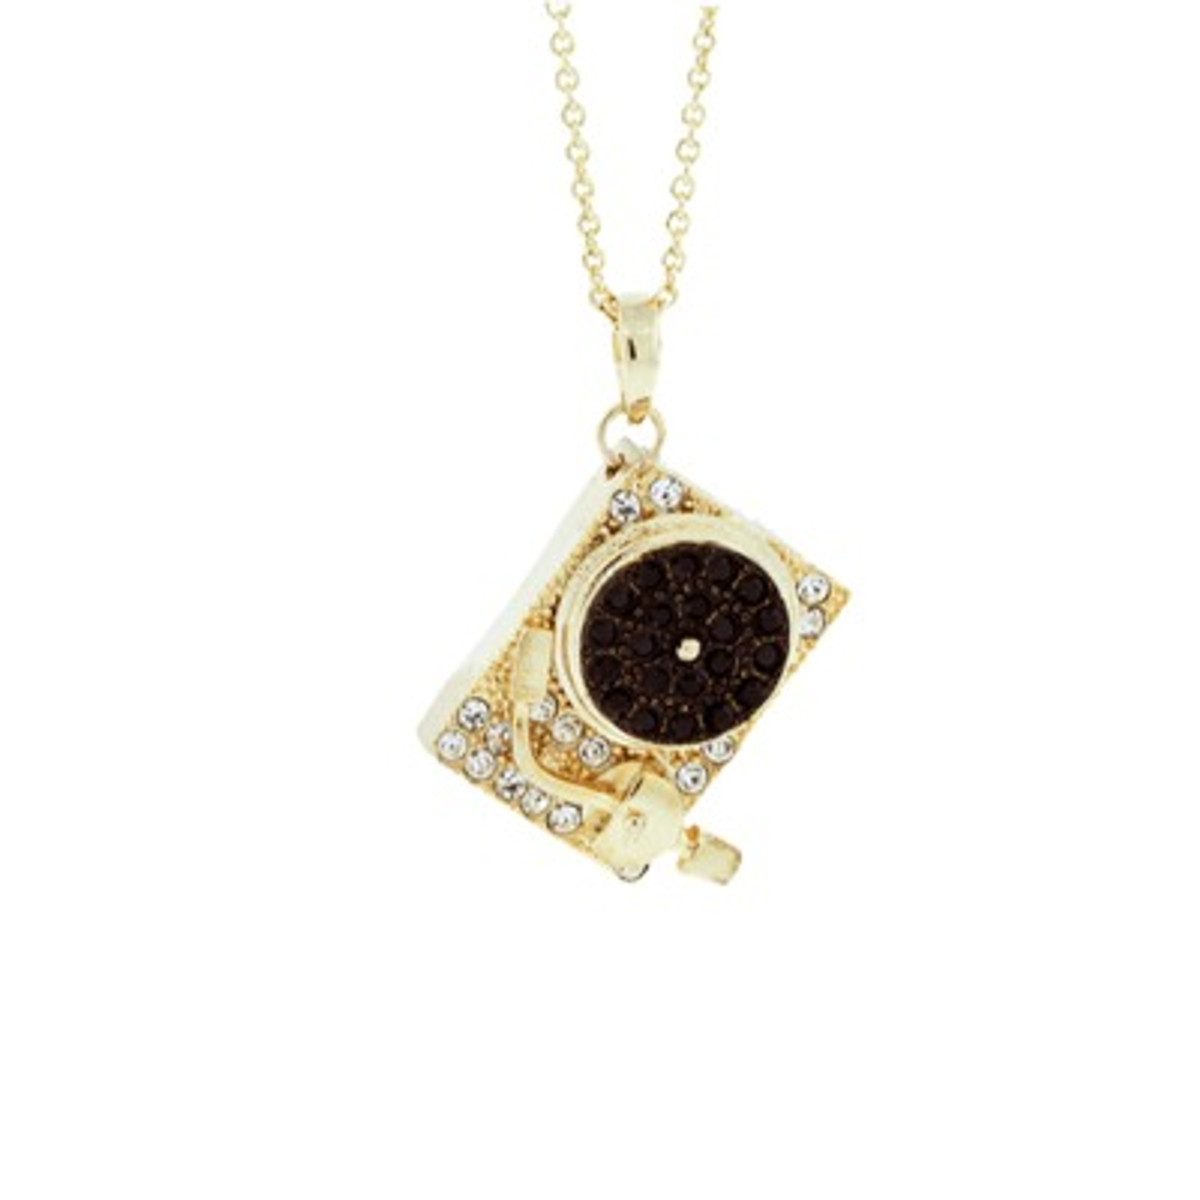 A Beautiful Turntable Necklace Gold Necklace From Andrew Hamilton Crawford Jewelry